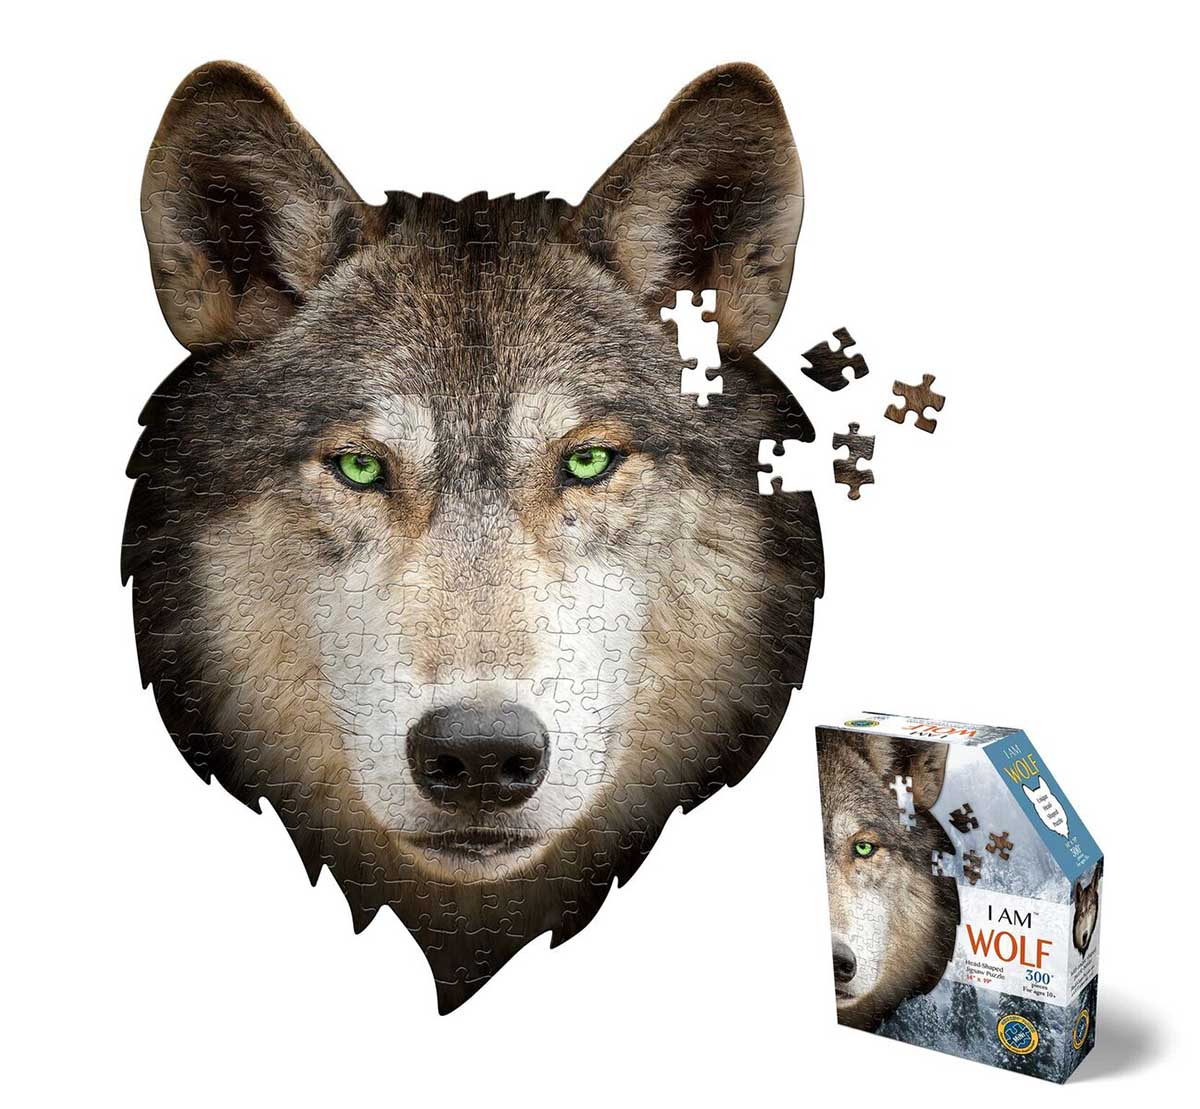 Madd Capp Mini Puzzle - I AM Wolf Wolves Shaped Puzzle